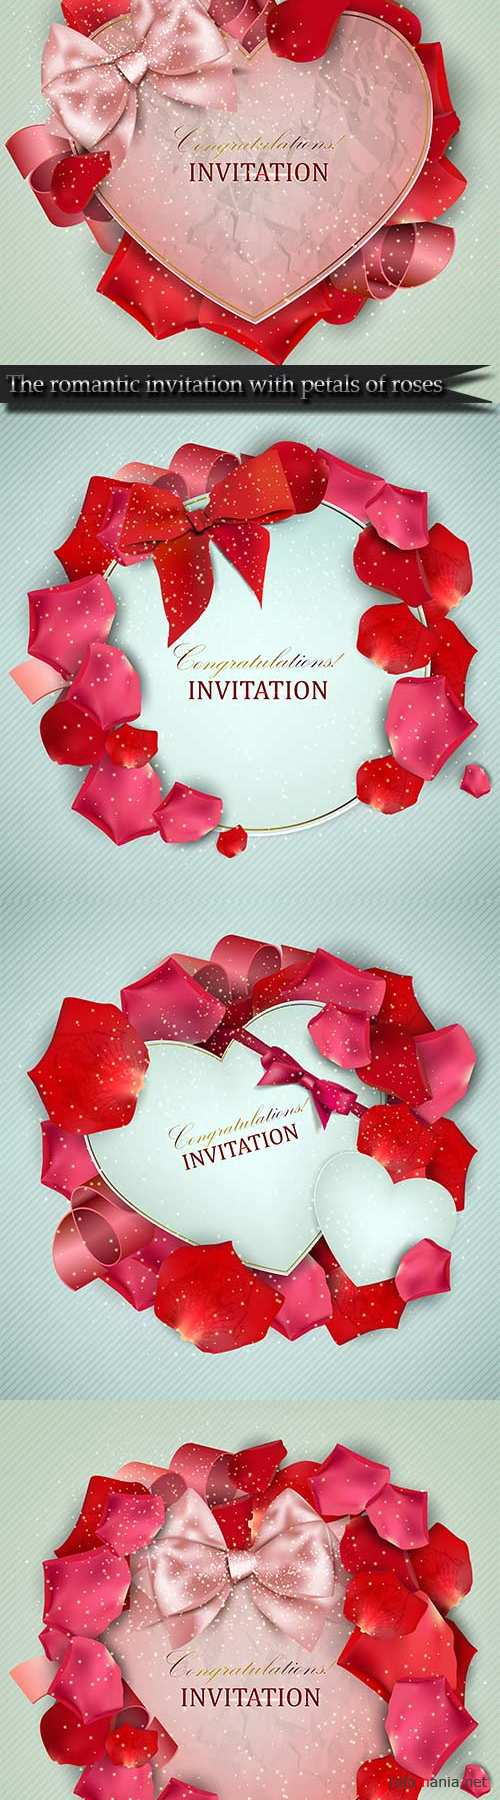 The romantic invitation with petals of roses